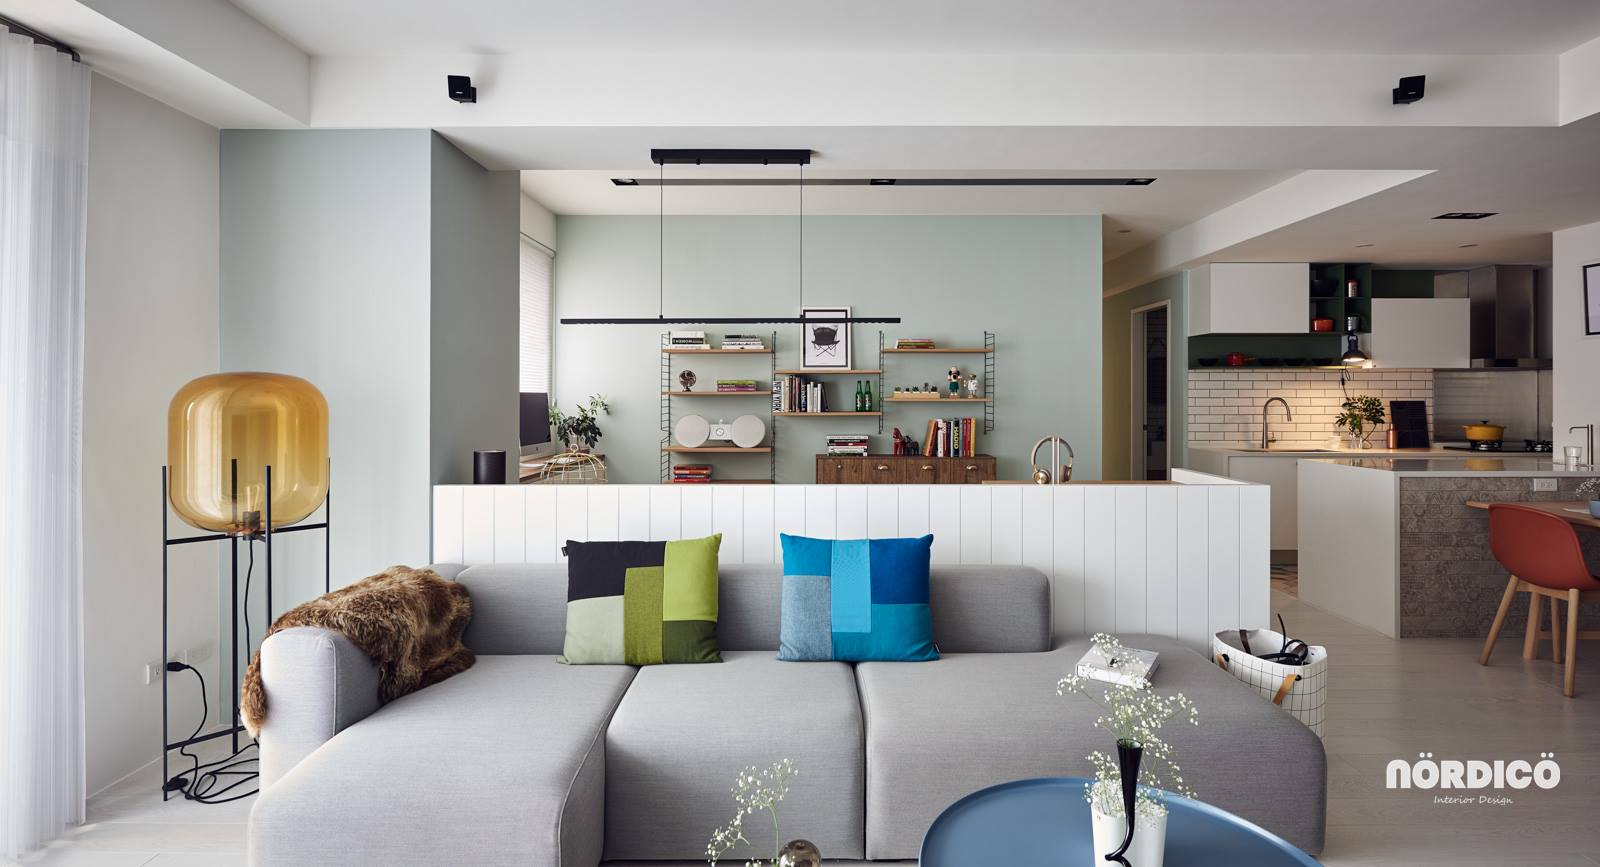 Nordic Interior Style With Bright Fresh Colors - Nordic decor inspiration in two colorful homes